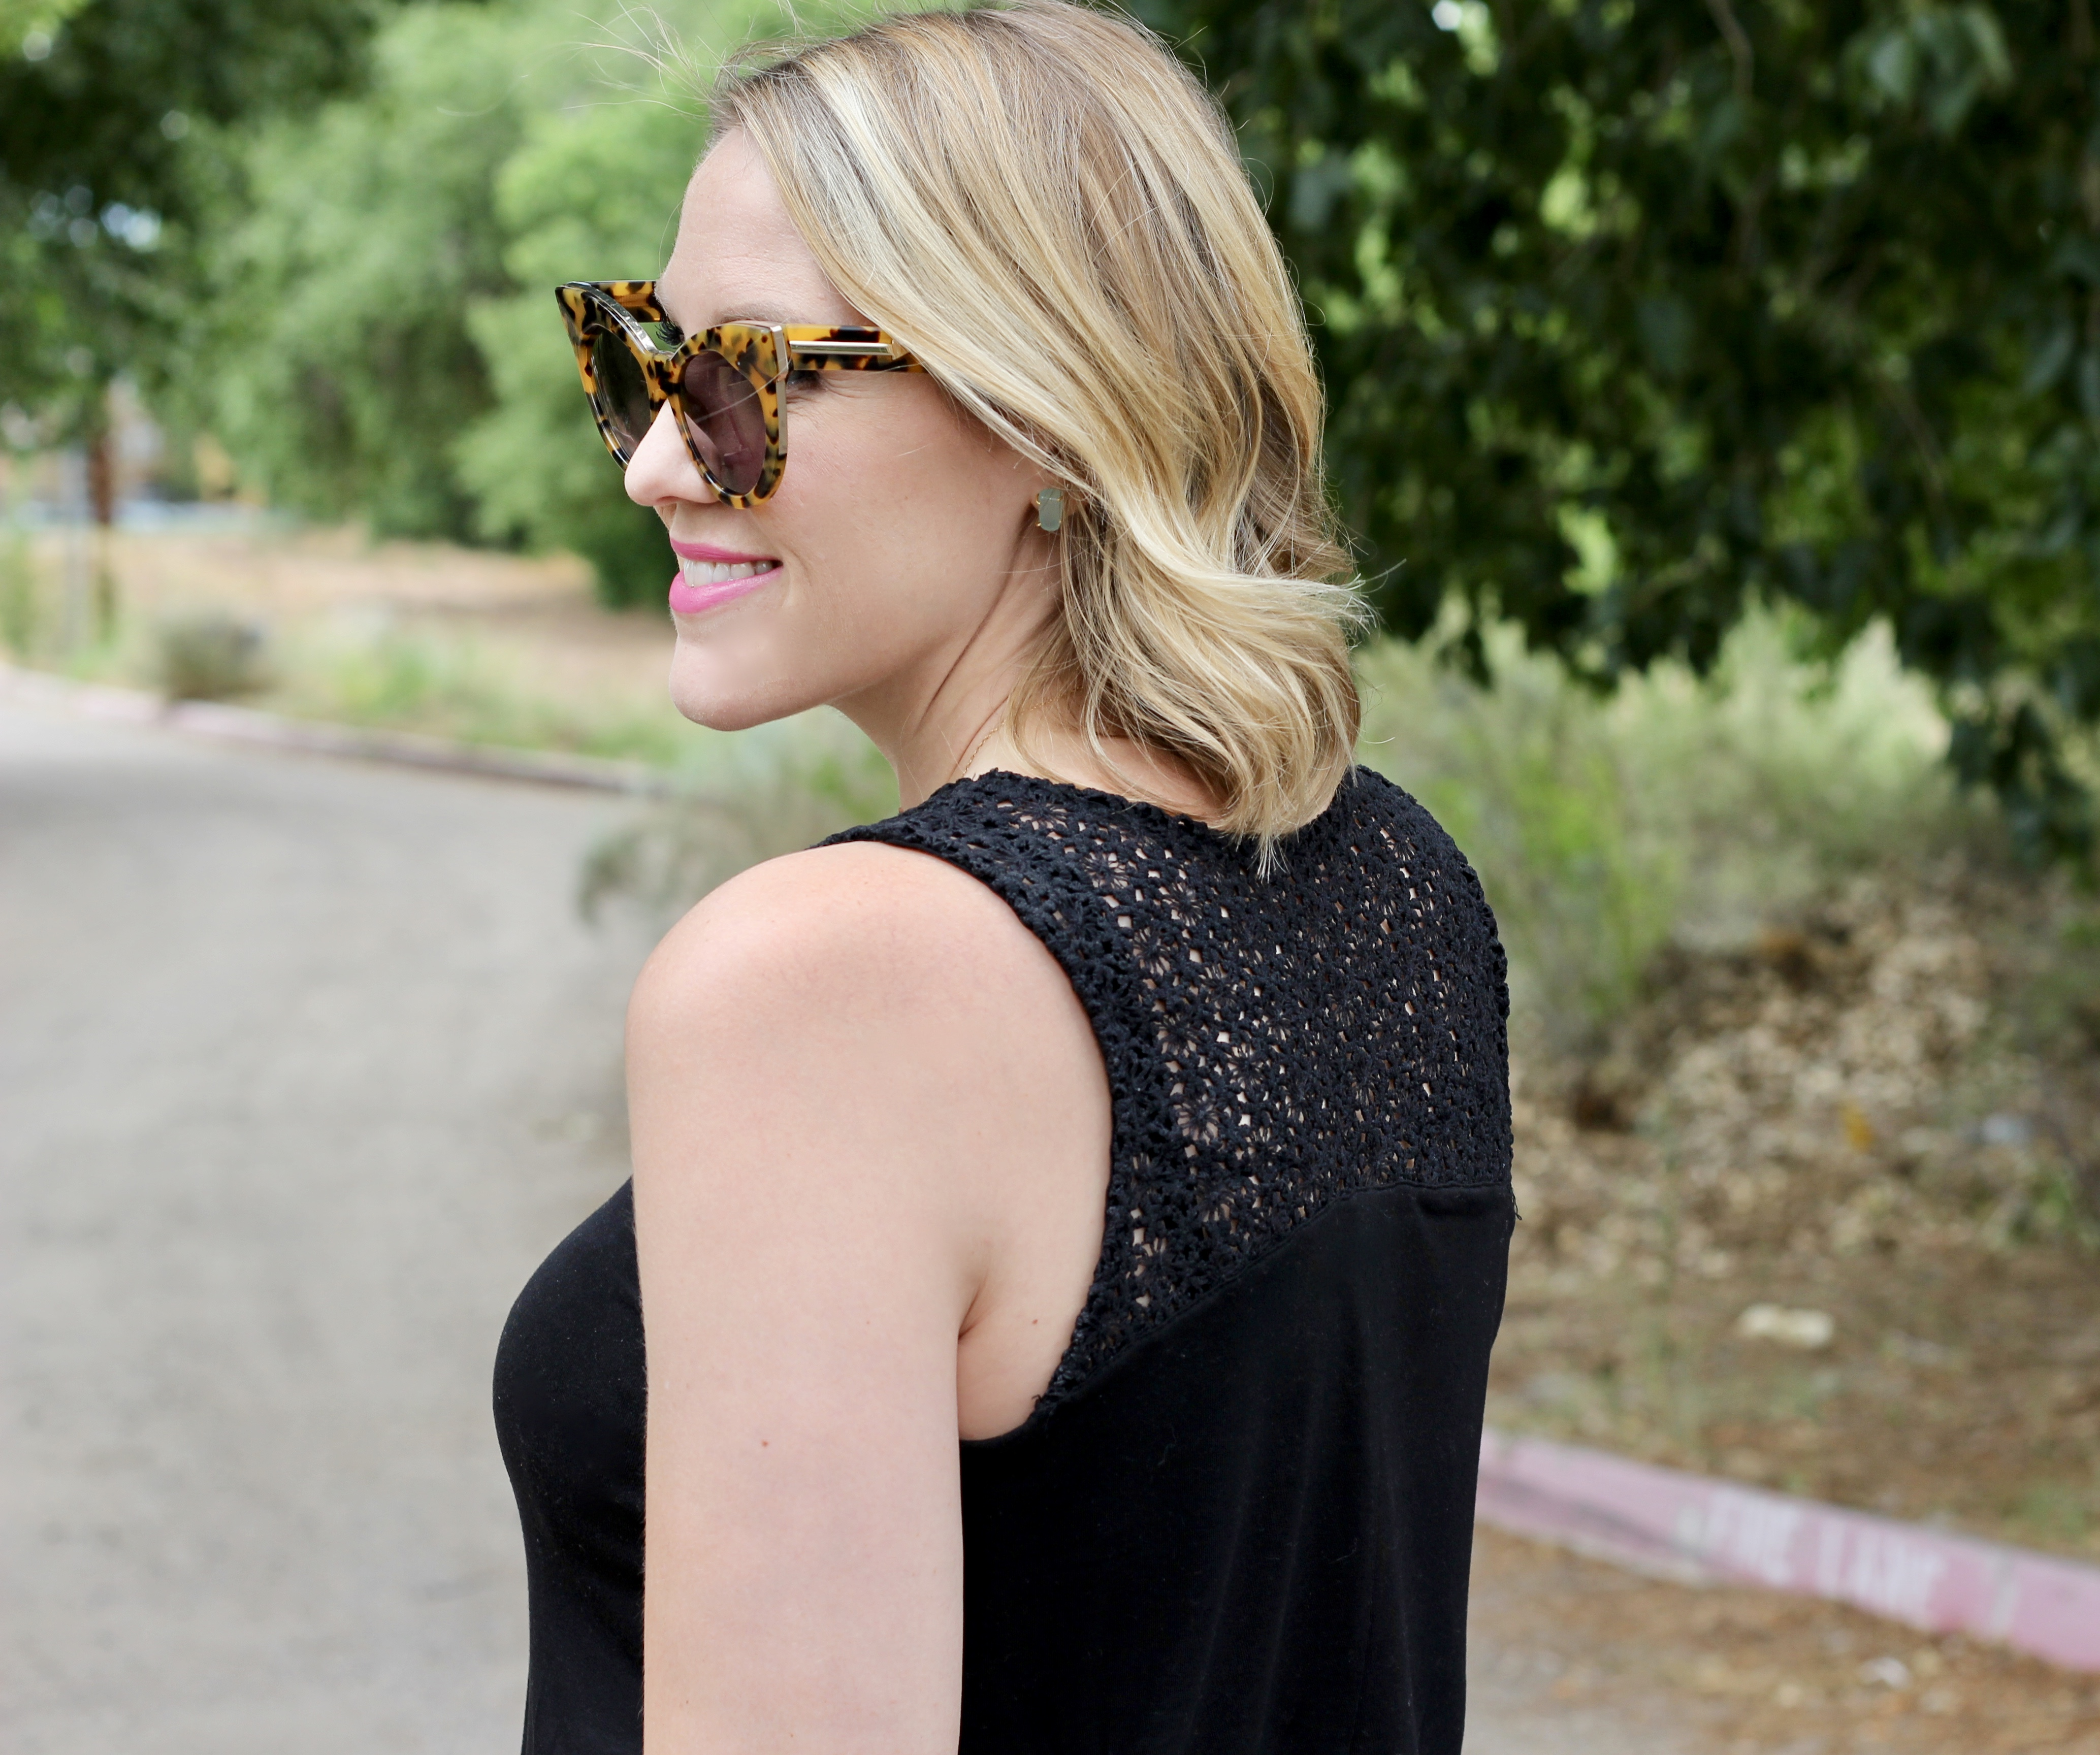 crochet back tank from old navy